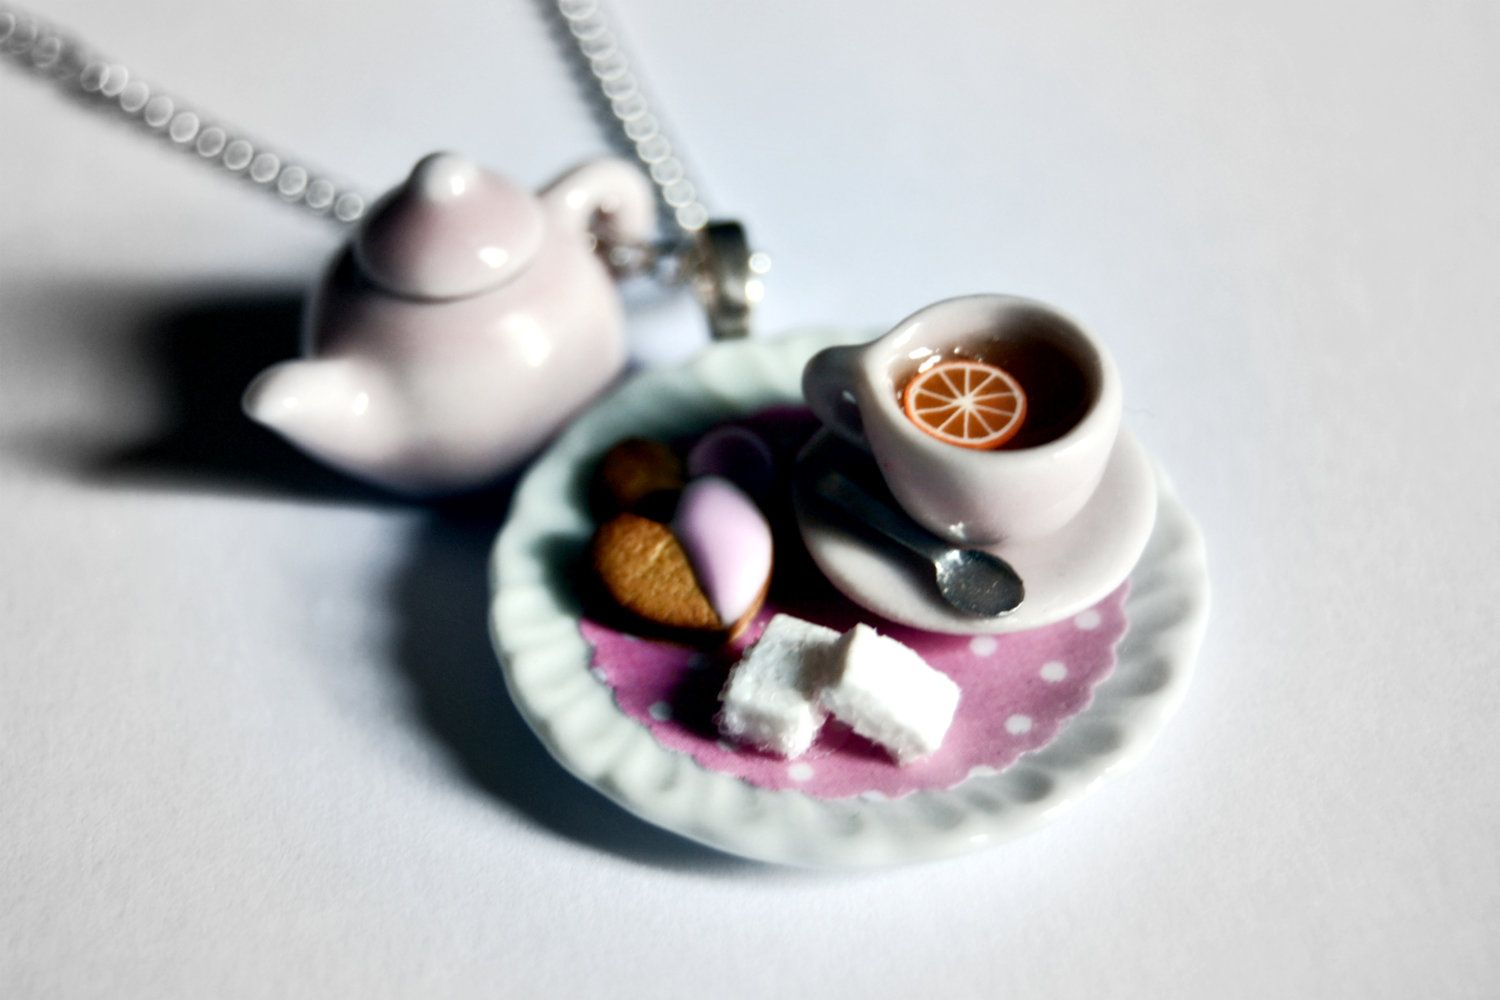 Teapot Charm Necklace, Tea Cup and Cookies on Pink Polka Dot Doily - Cute Miniature Food Jewelry - Polymer Clay Food - Tea party Necklace